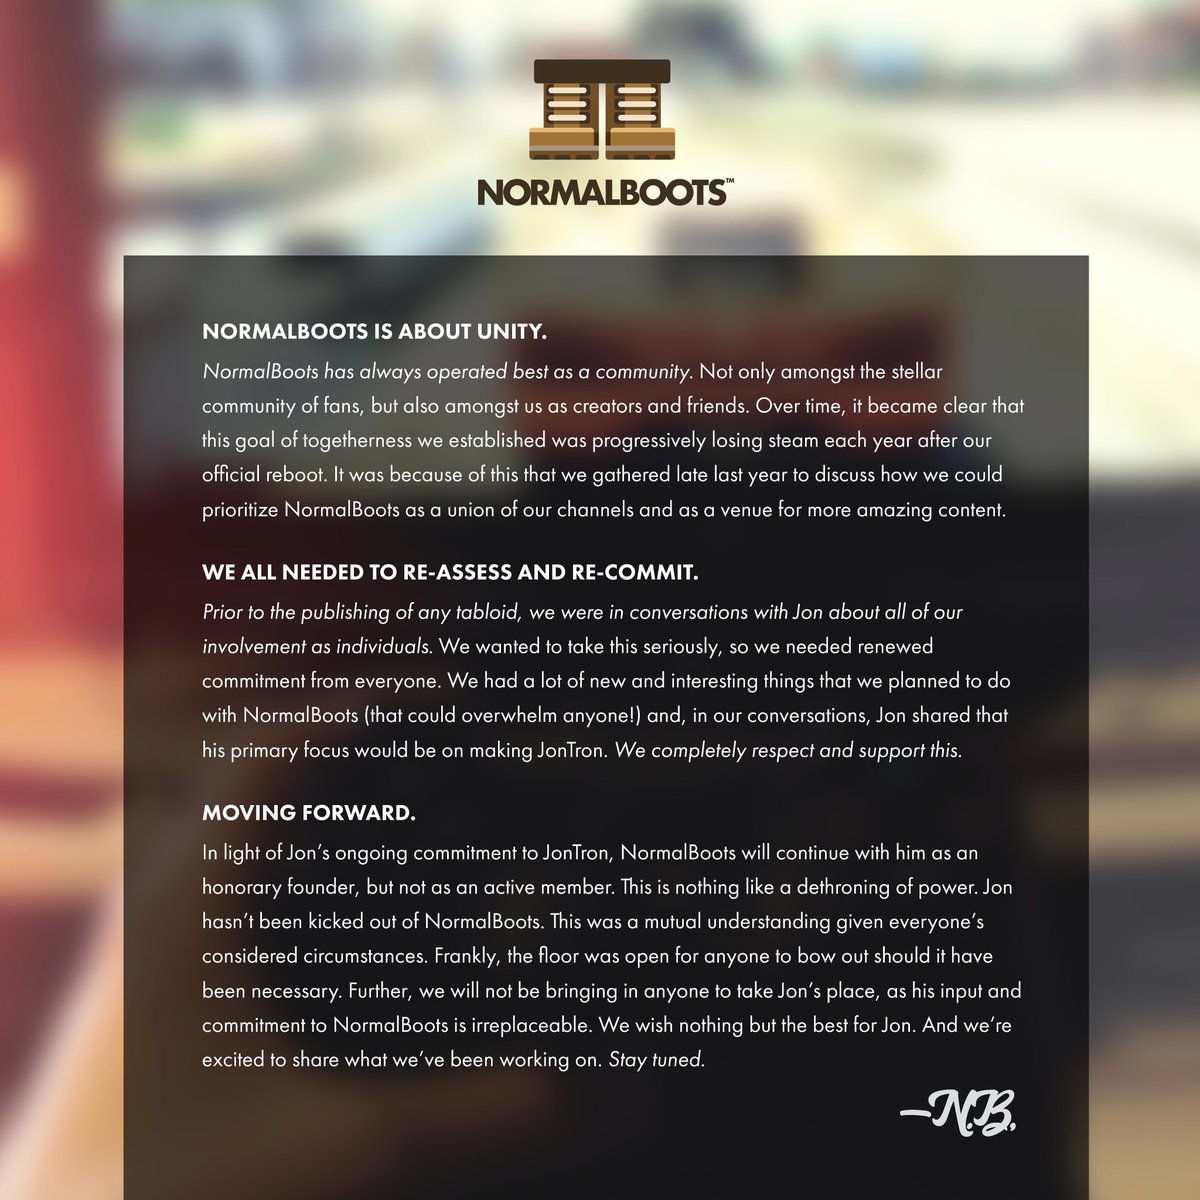 Hey everyone - Here's an announcement regarding the future of NormalBoots https://t.co/4gkNWaJ1ey